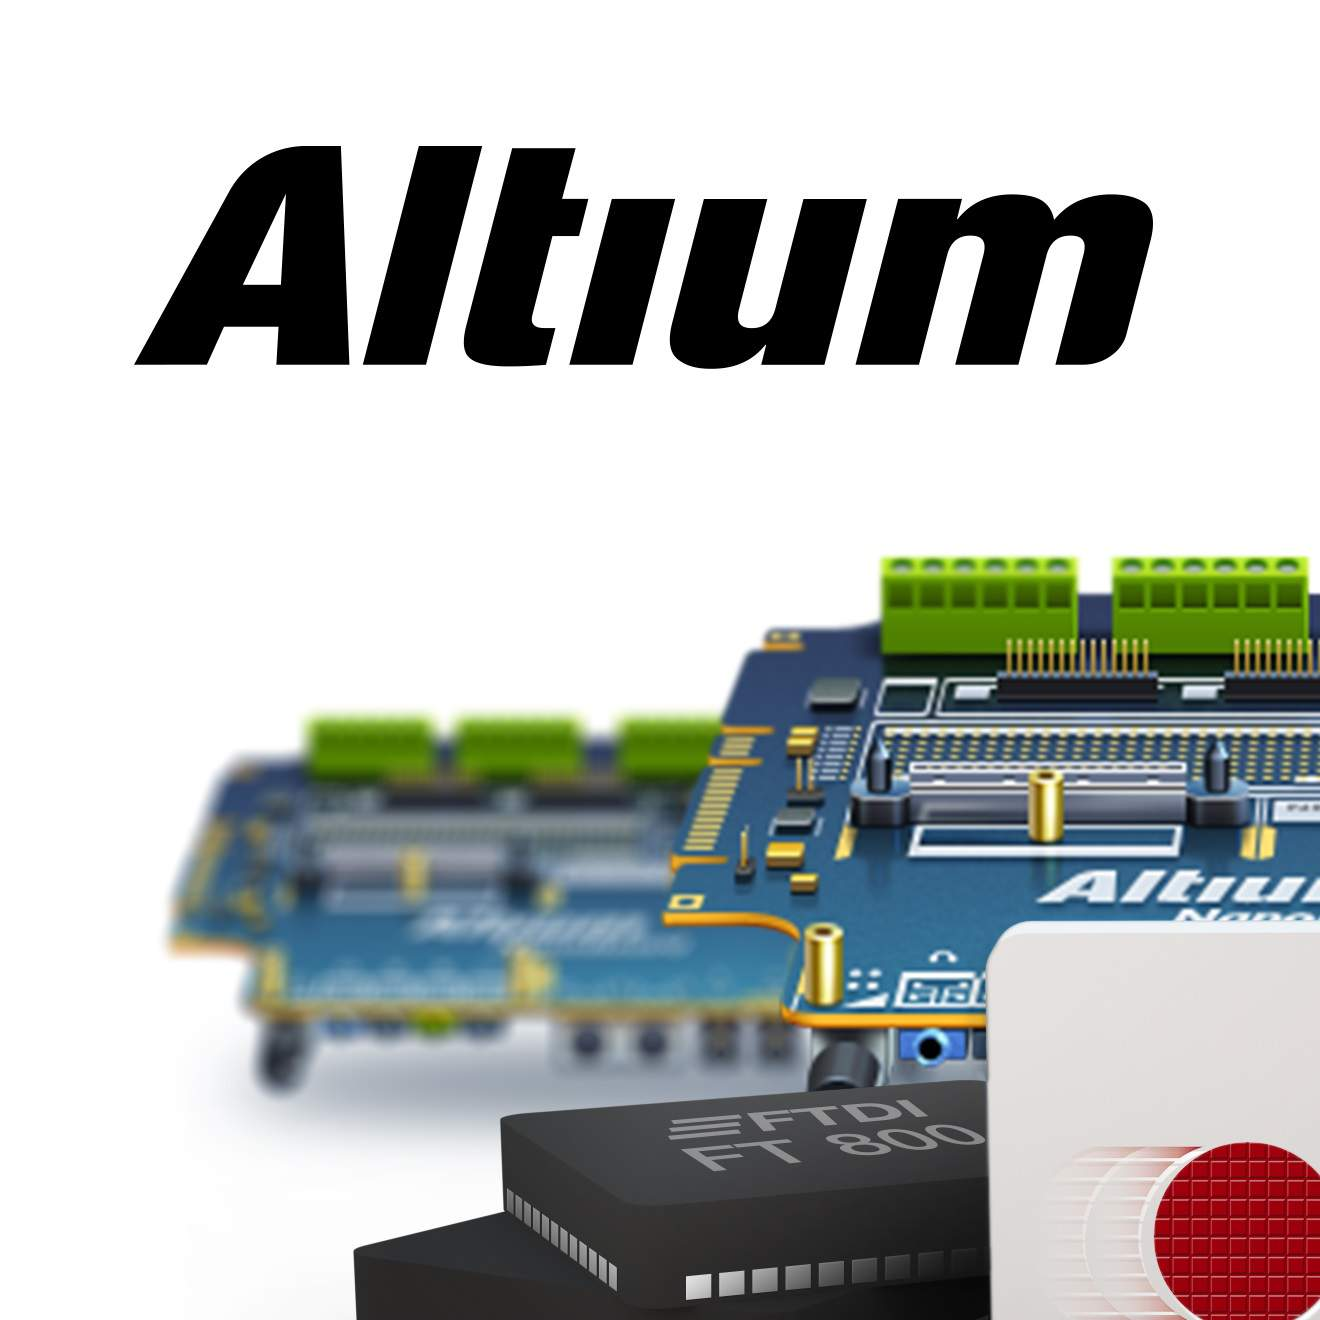 Altium Share Price Up 5 86% With Impressive FY19 Results